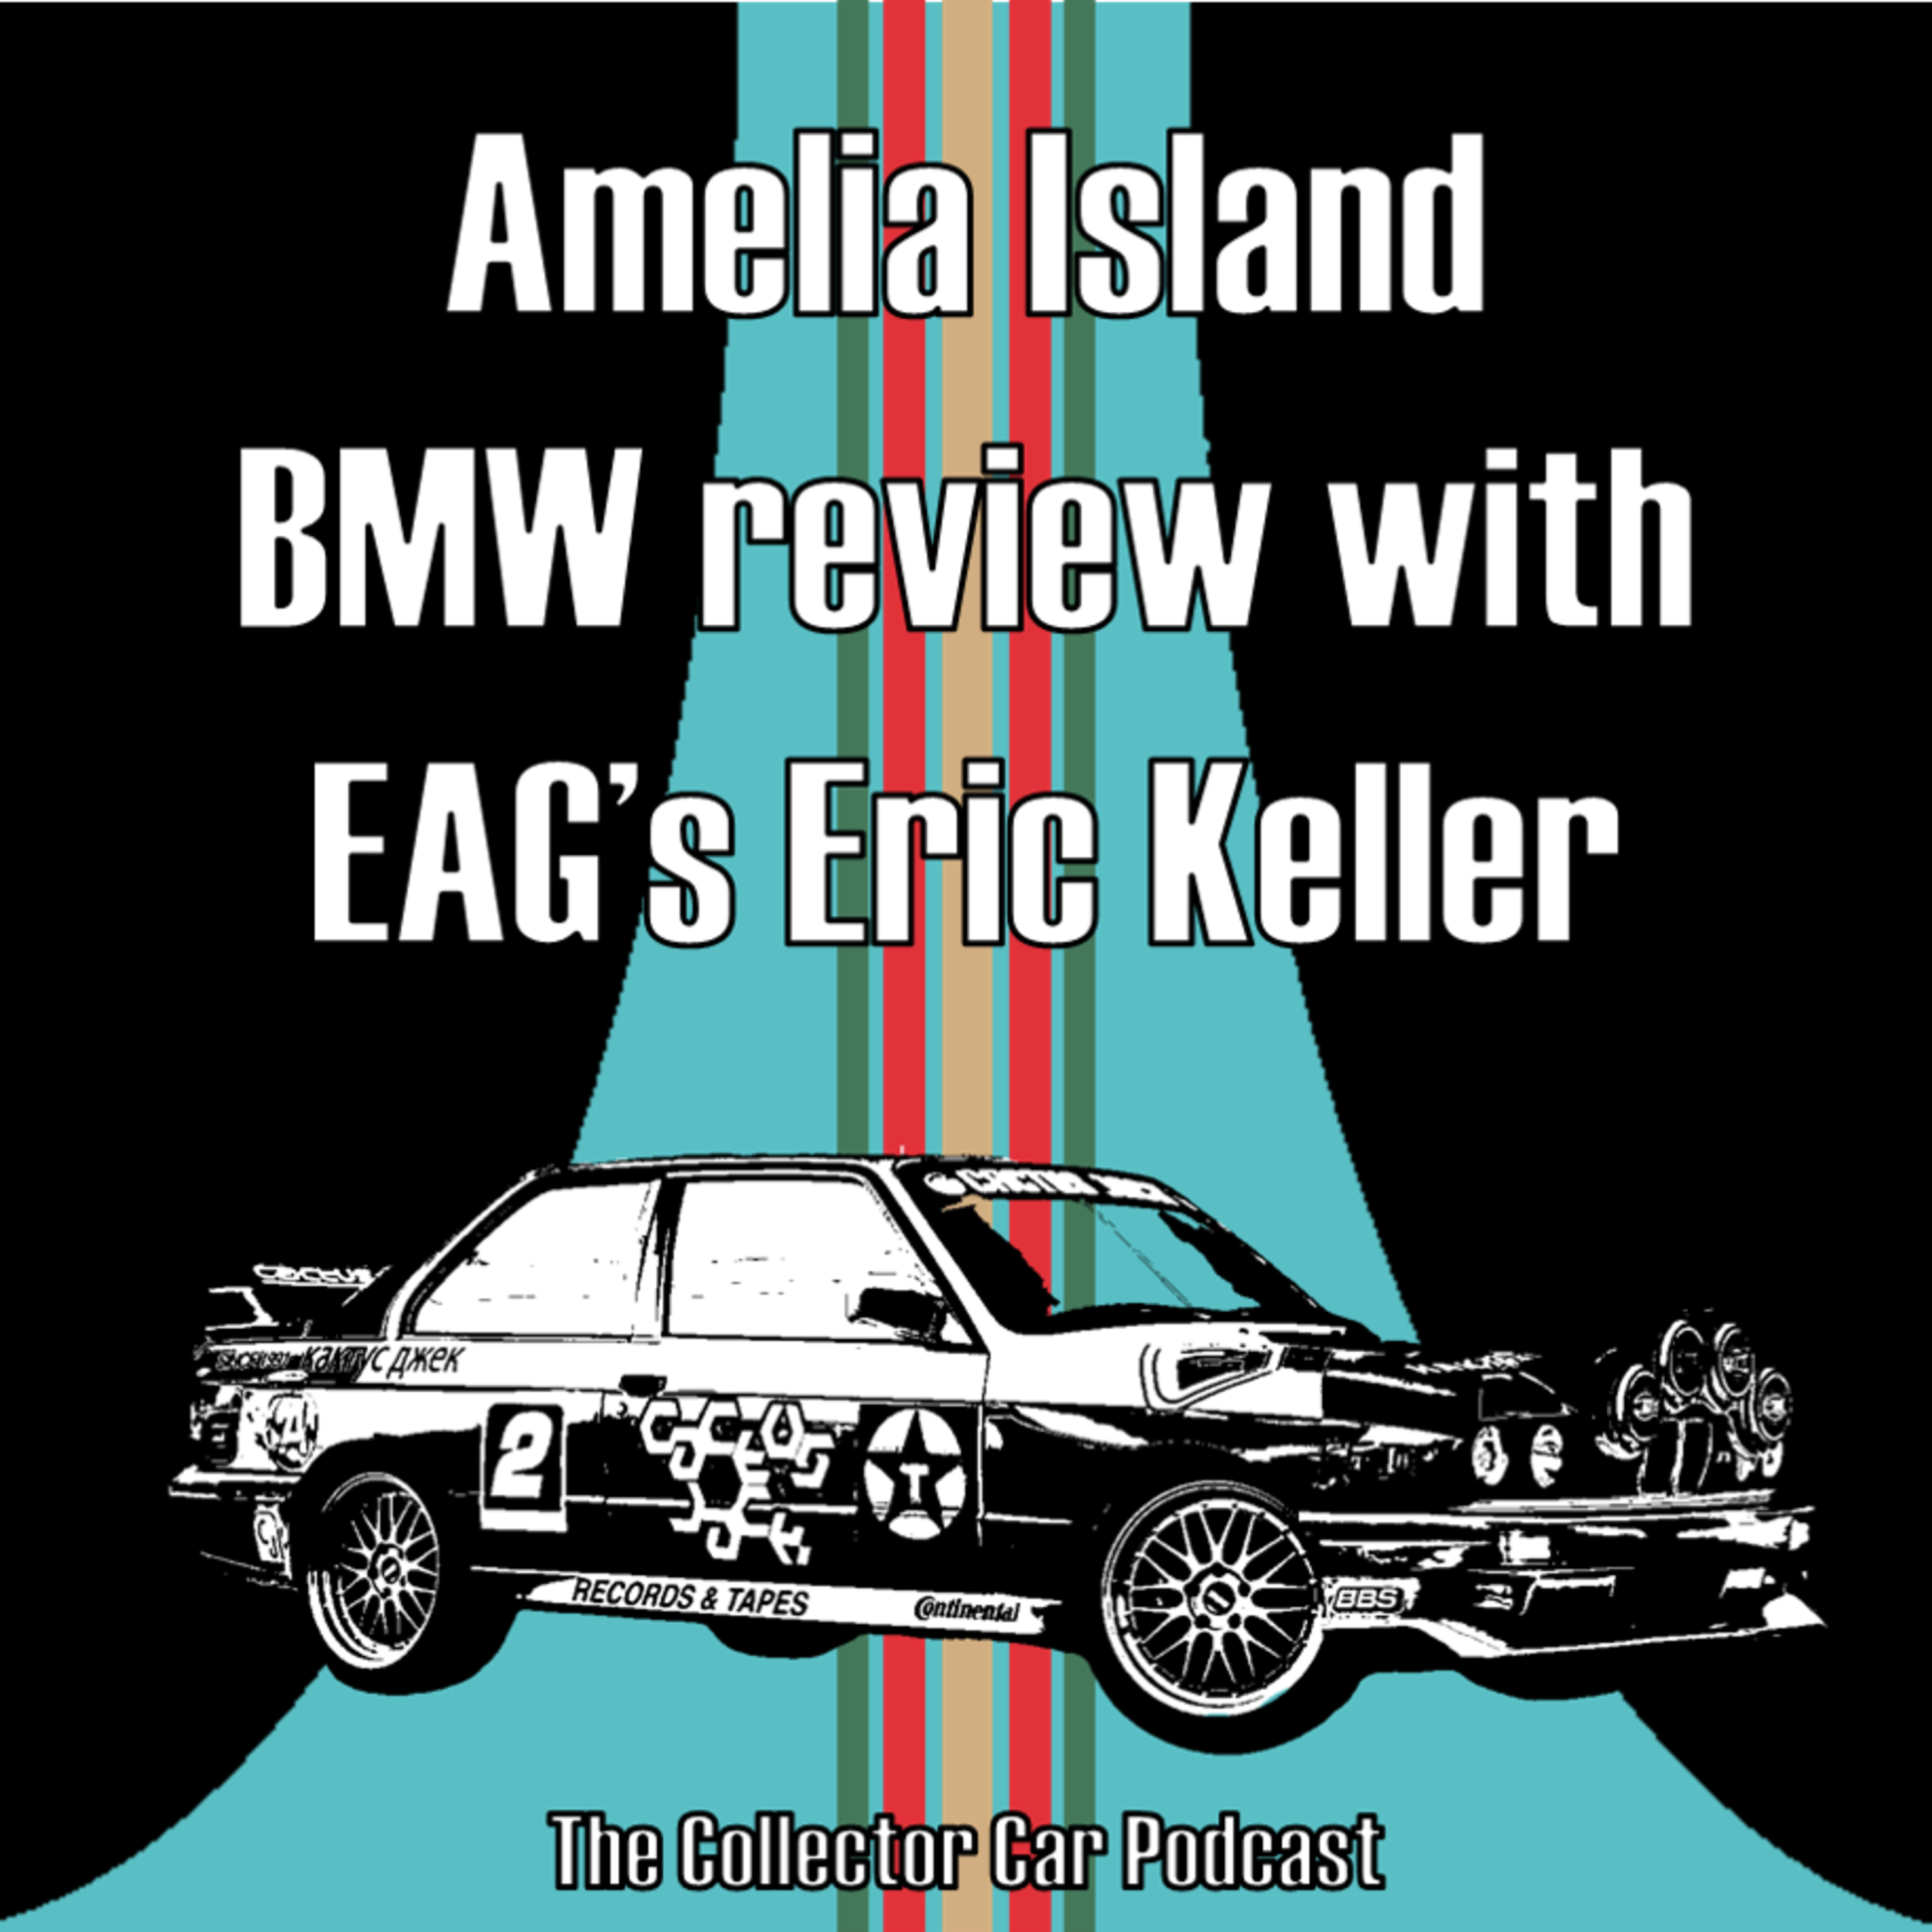 056 Amelia Island Bmw Review With Eag S Eric Keller The Collector Car Podcast Lyssna Här Poddtoppen Se